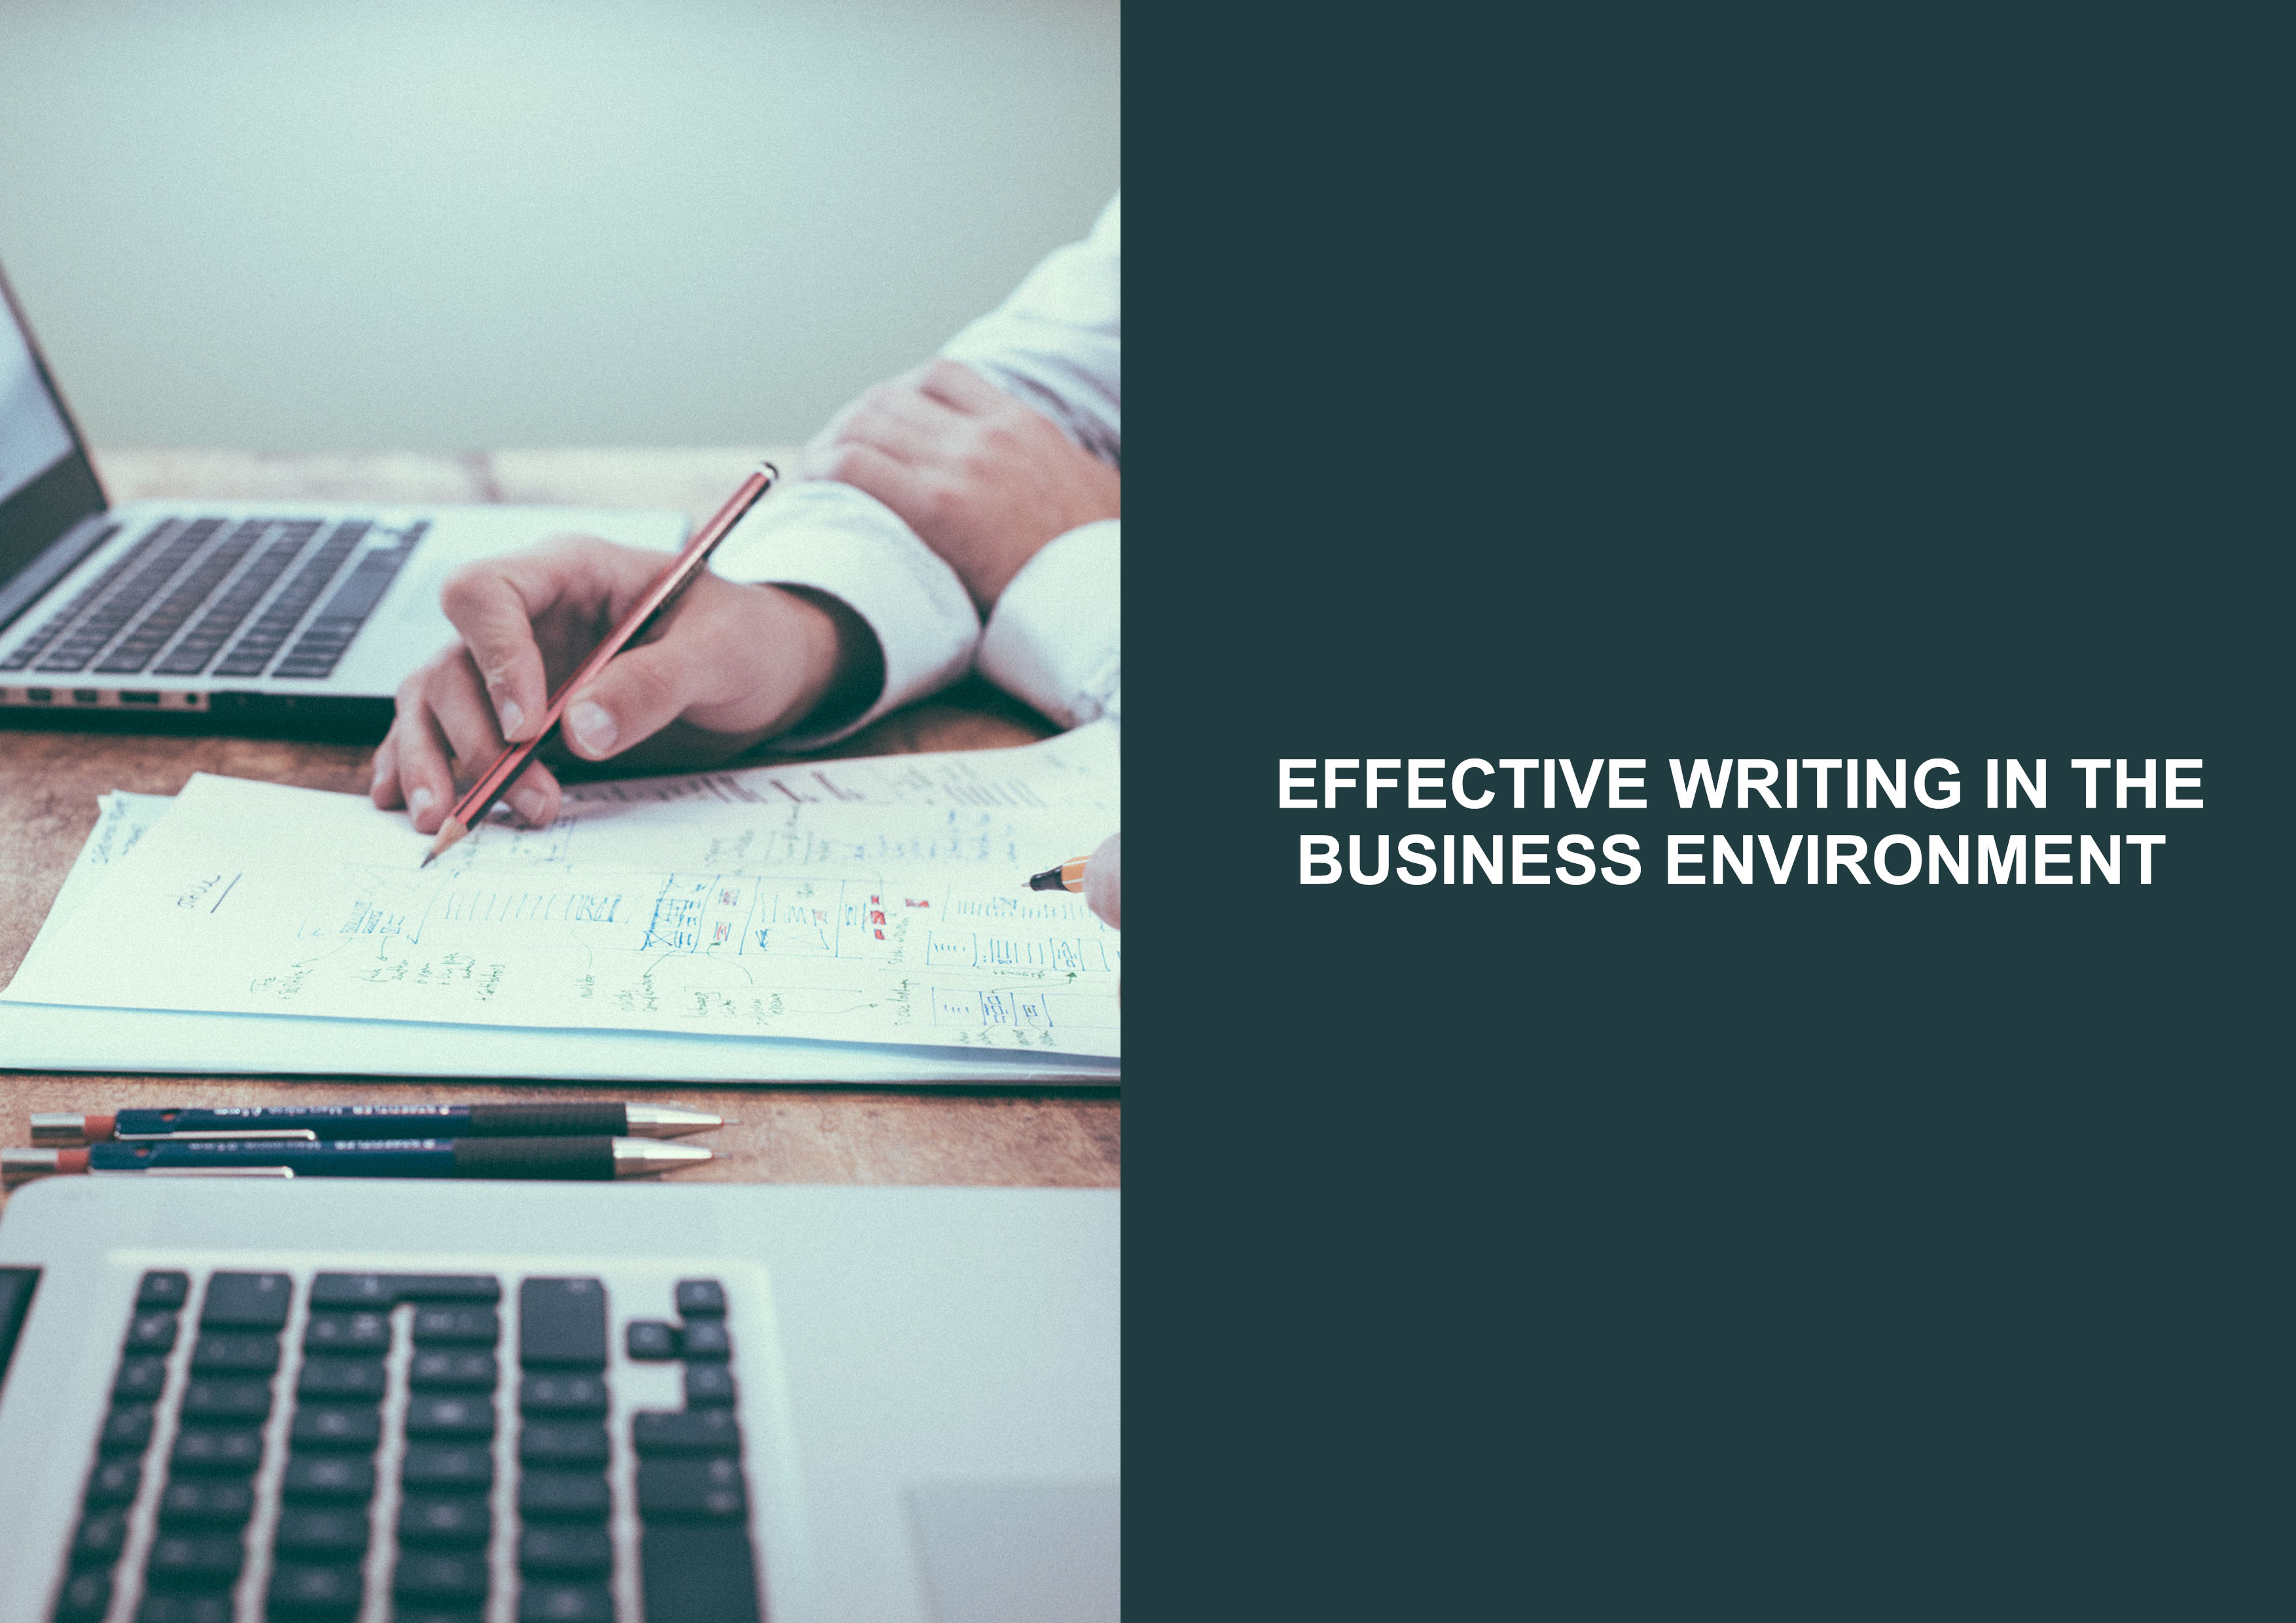 Effective Writing in the Business Environment